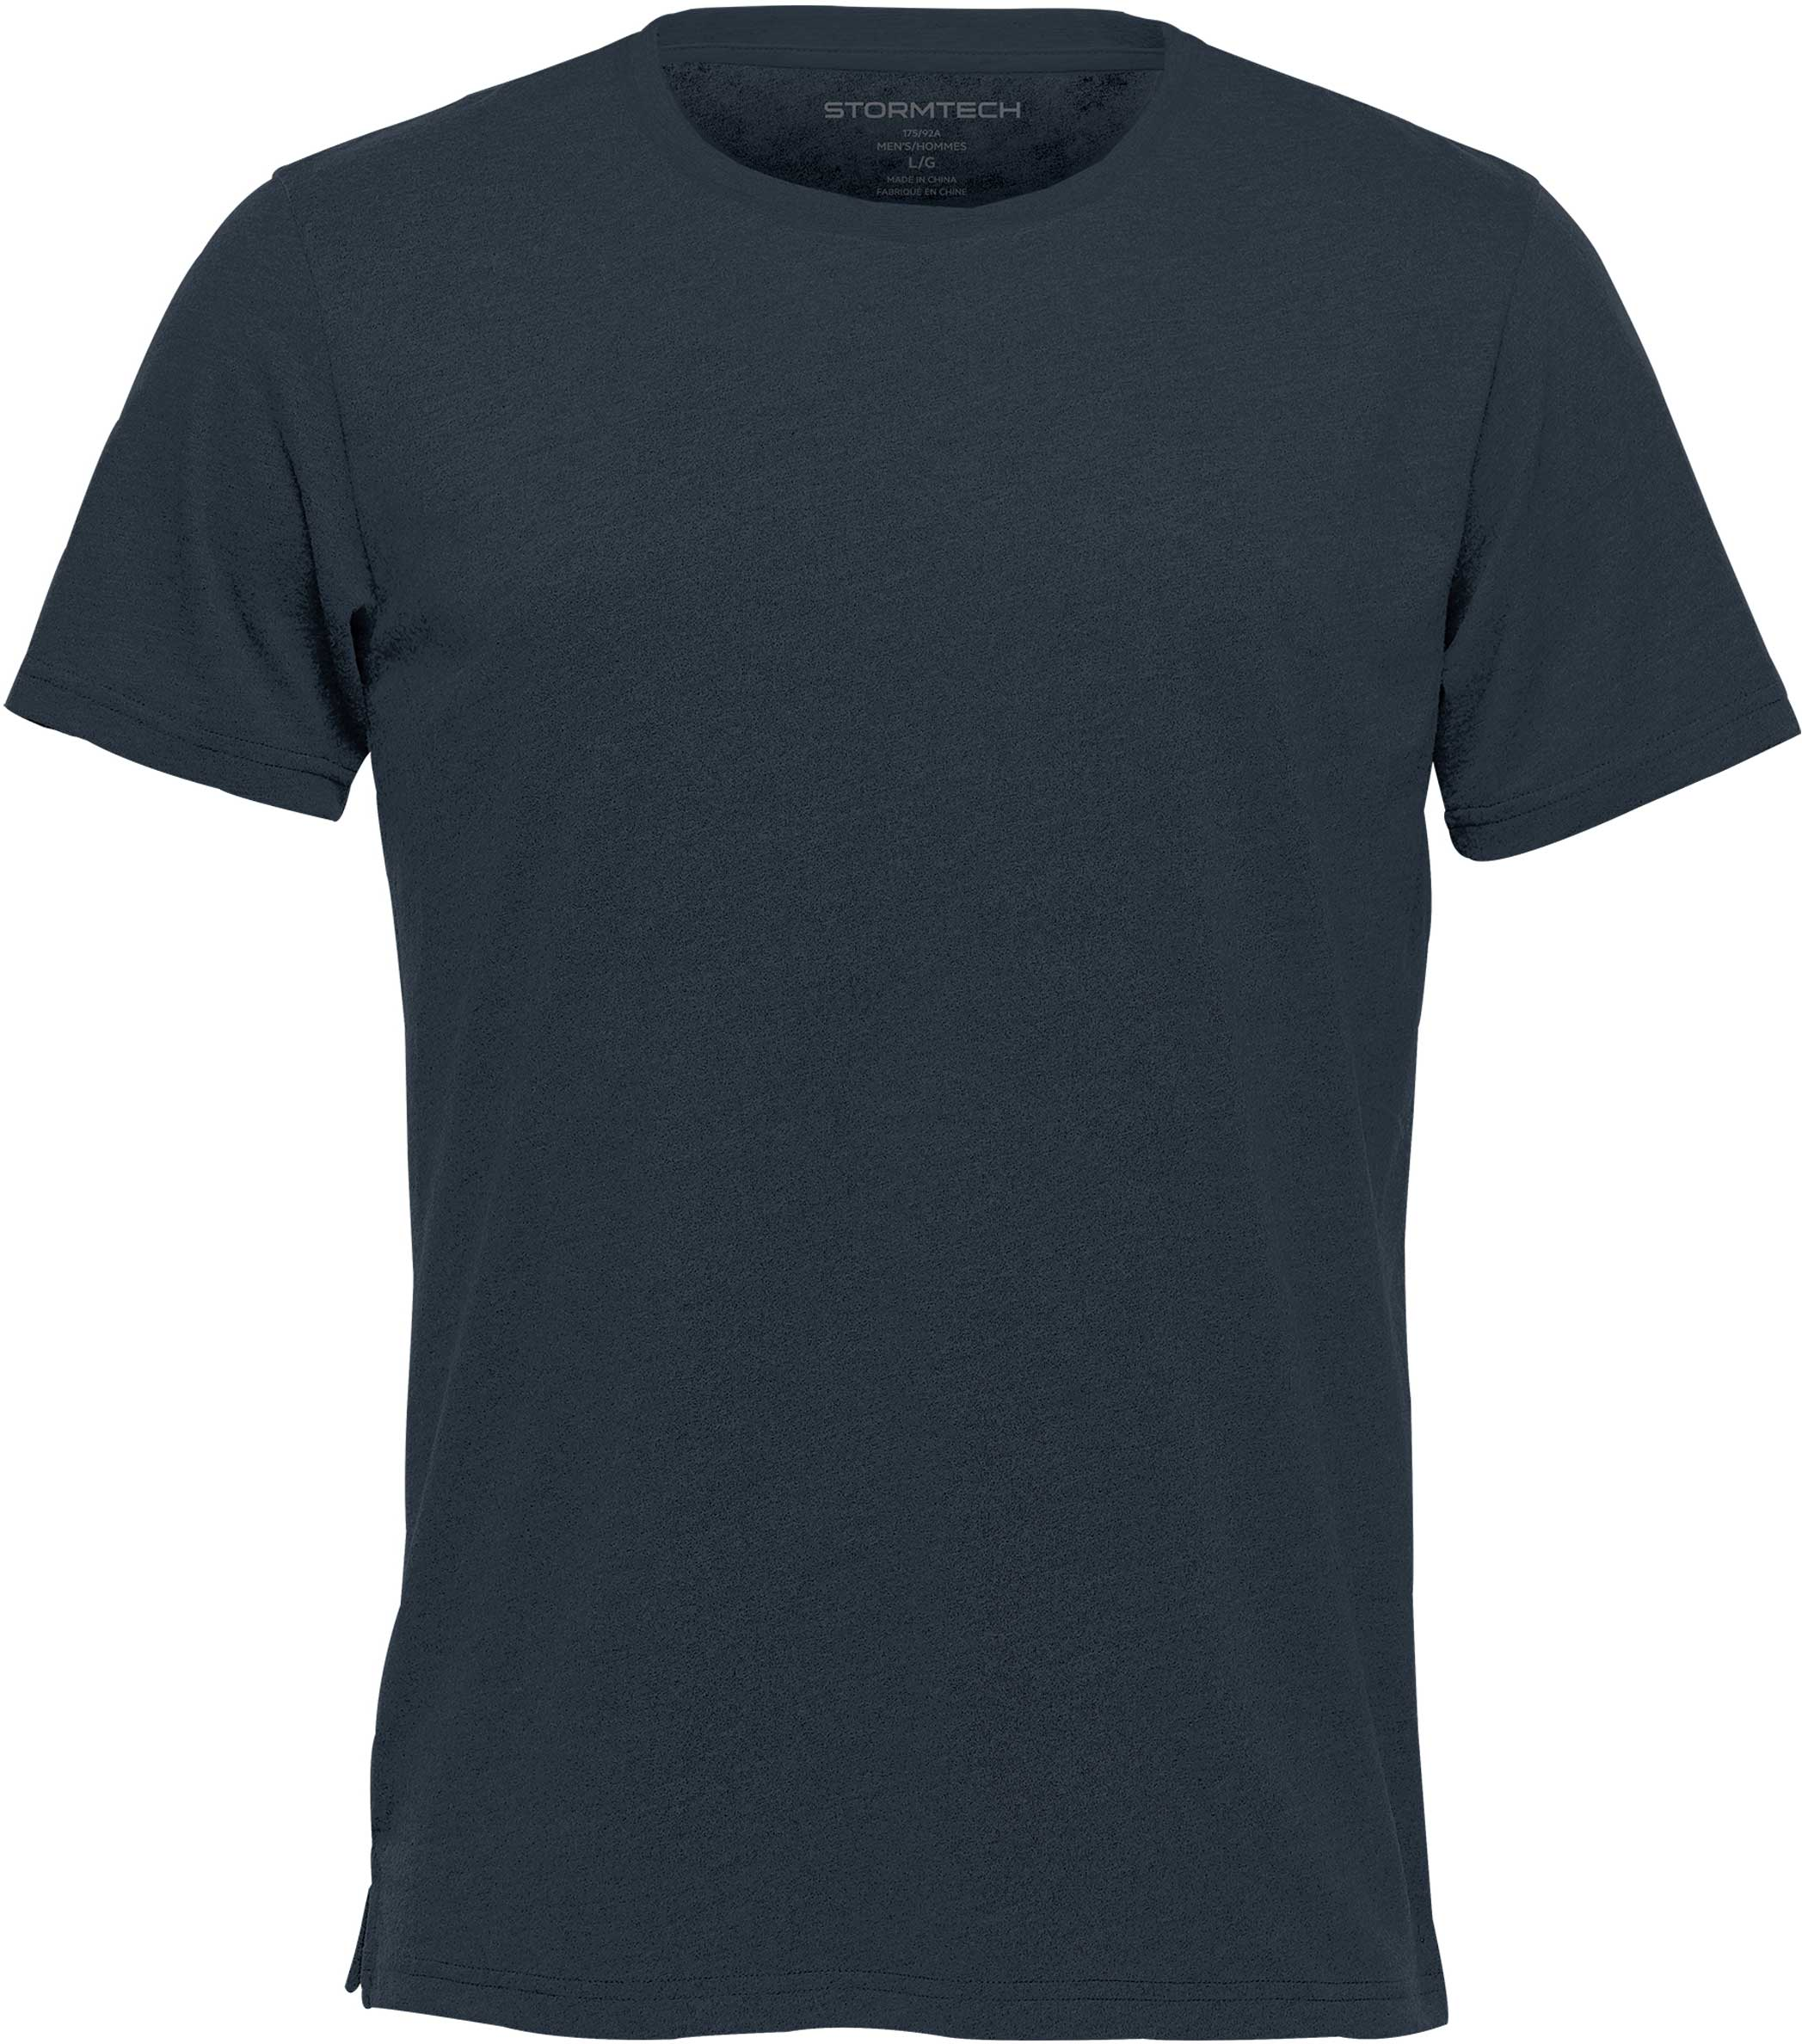 Picture of Stormtech Men's Torcello Crew Neck Tee